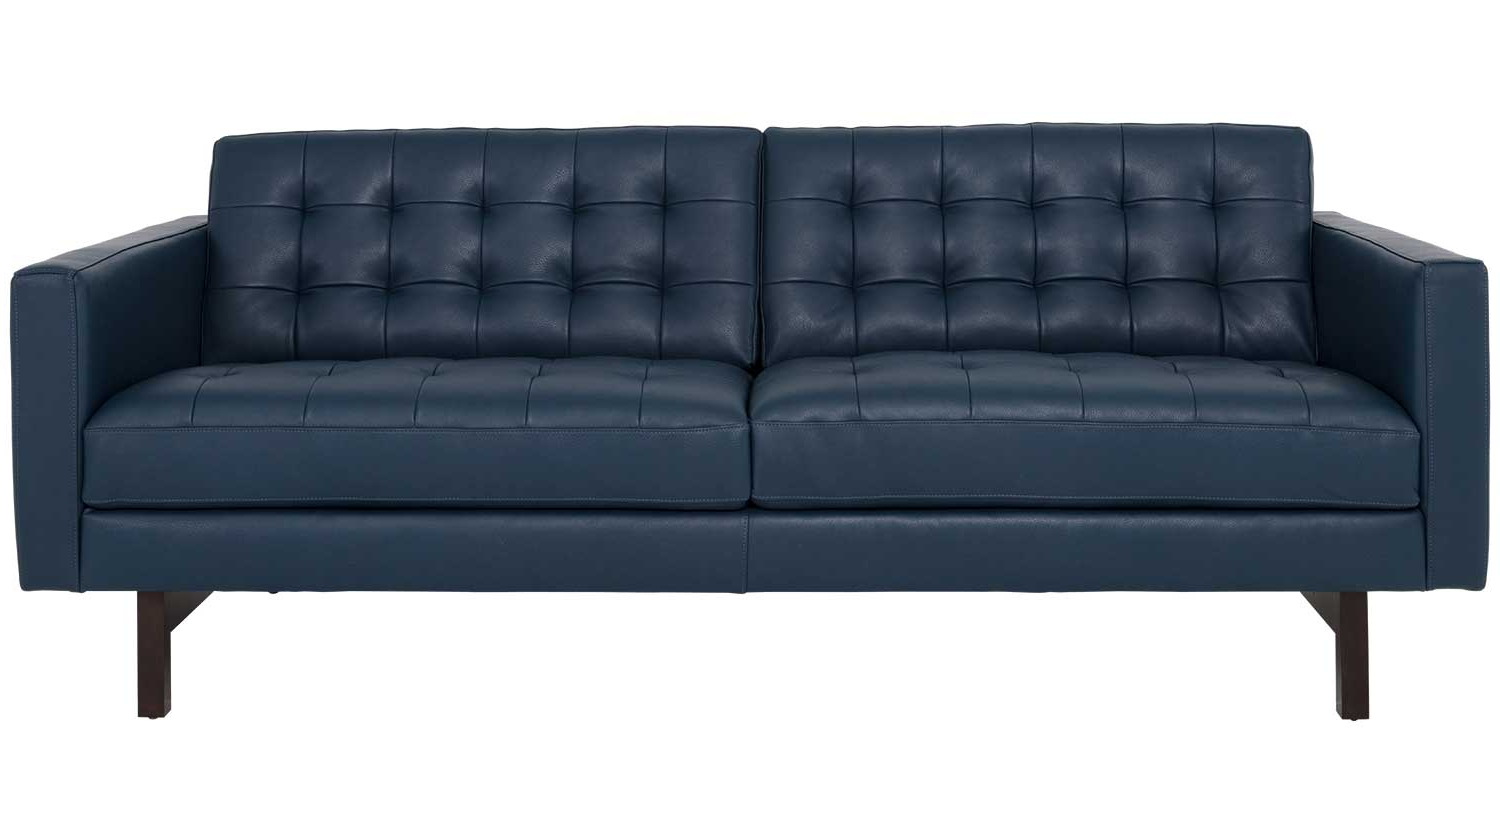 Designer Sofas Boston (Gallery 16 of 20)